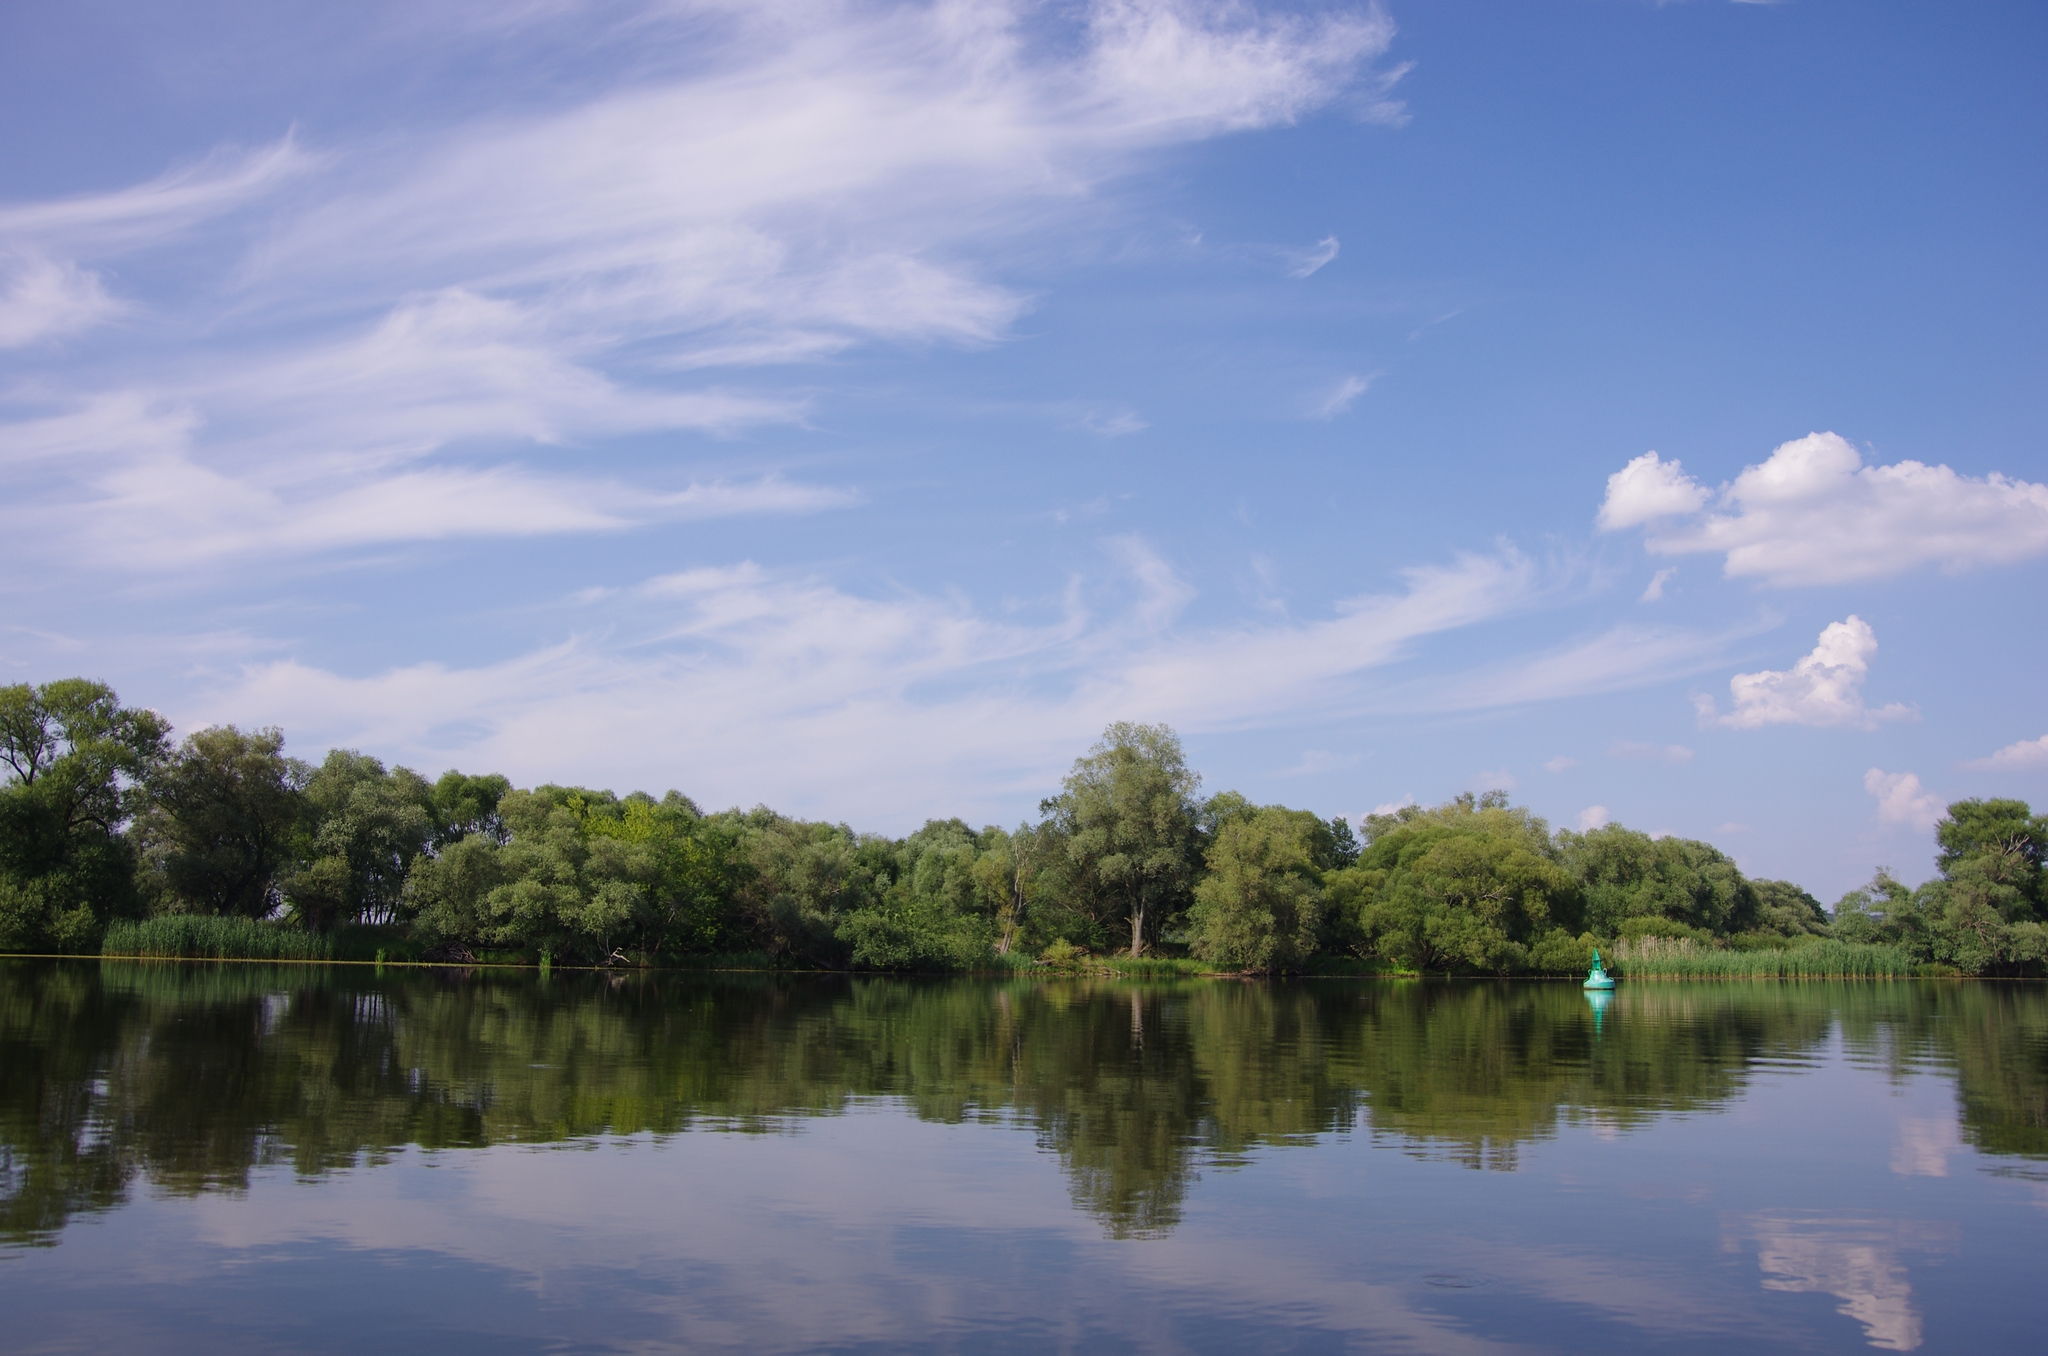 kayaking-odra-east-and-west_15-48-16_25-07-2016